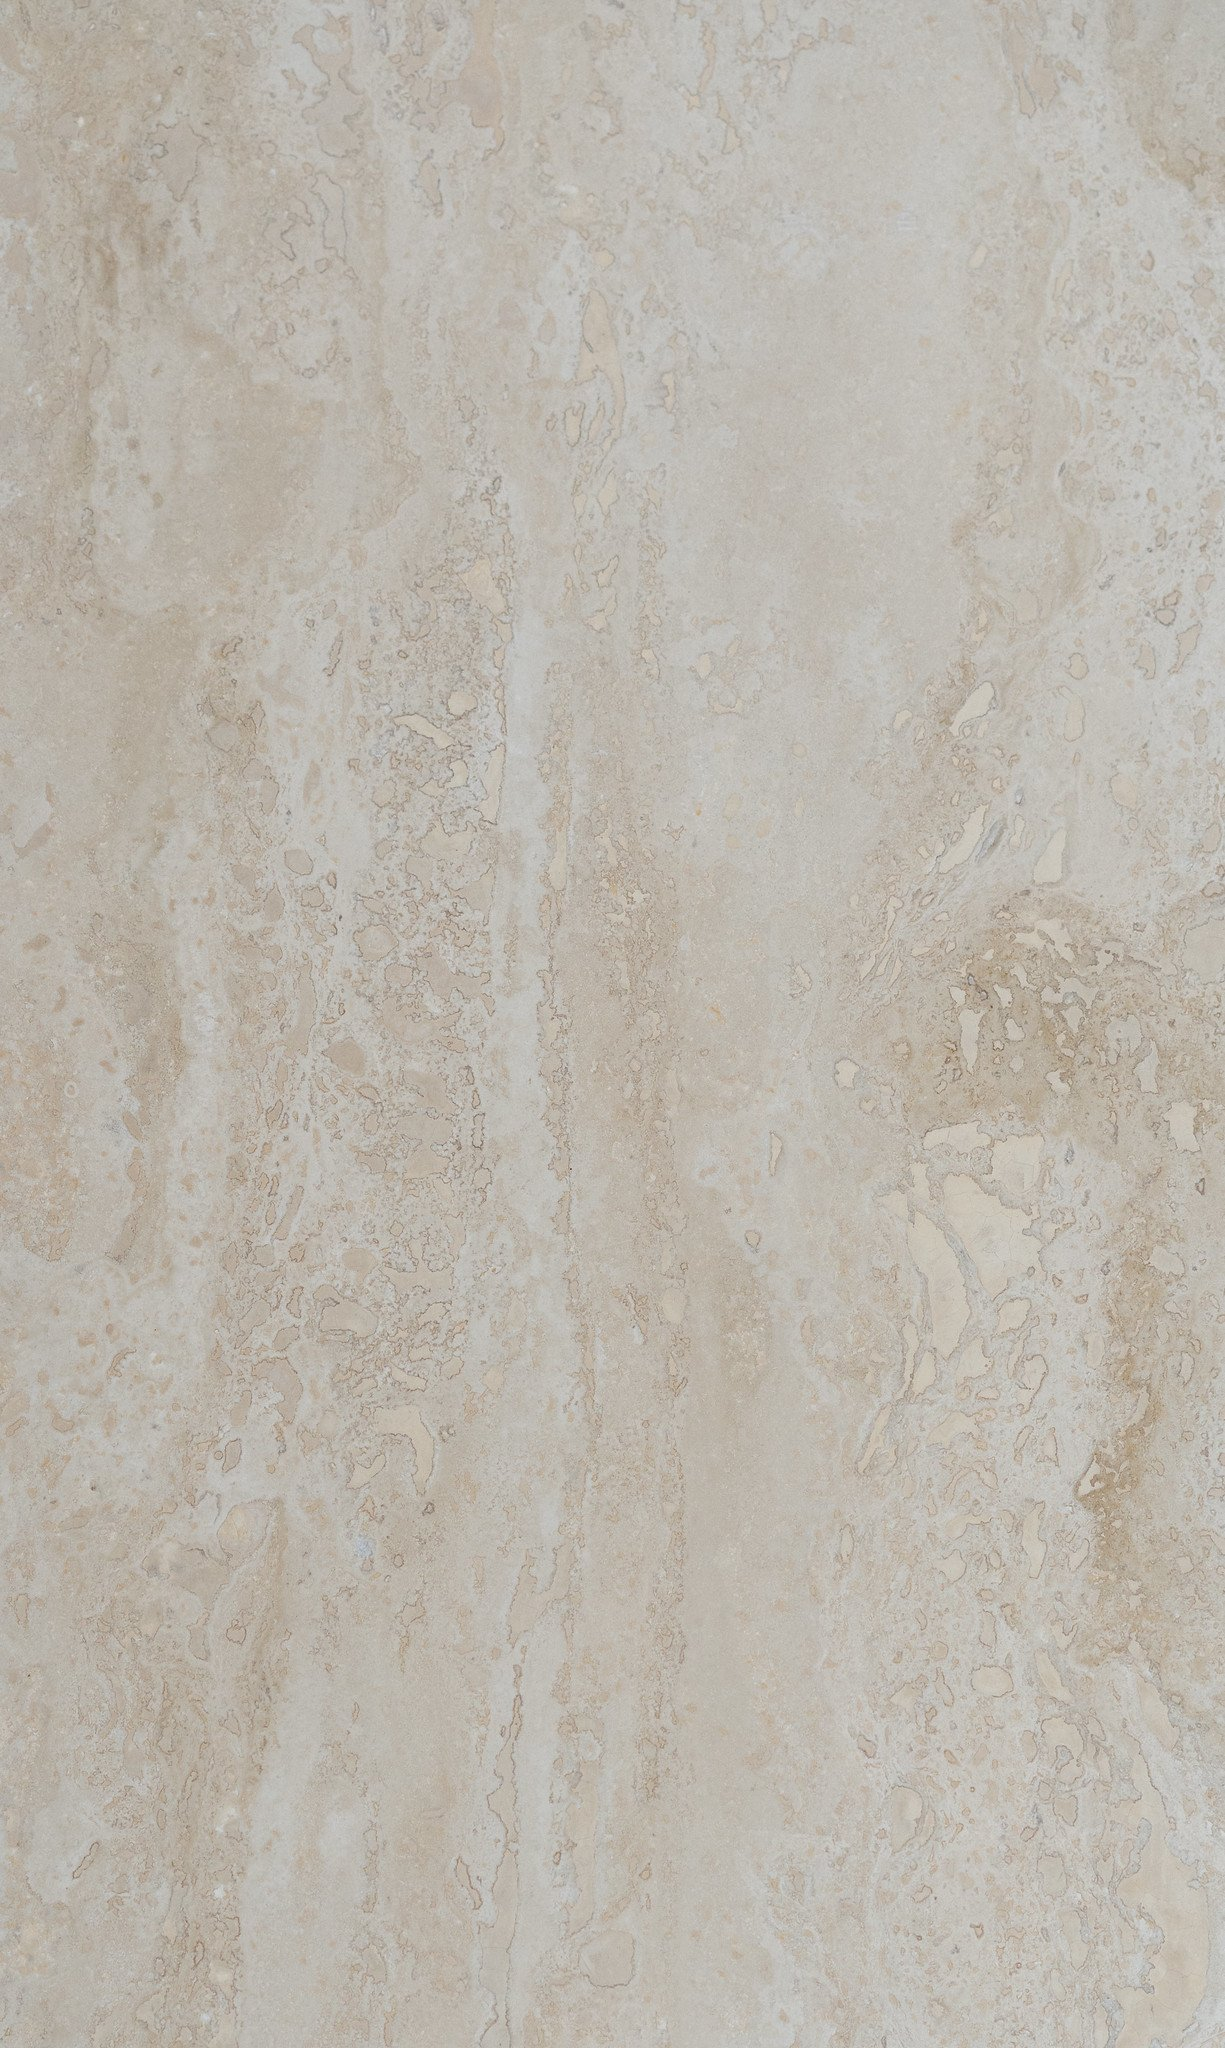 Travertine Navona Vein Cut Filled and Polished